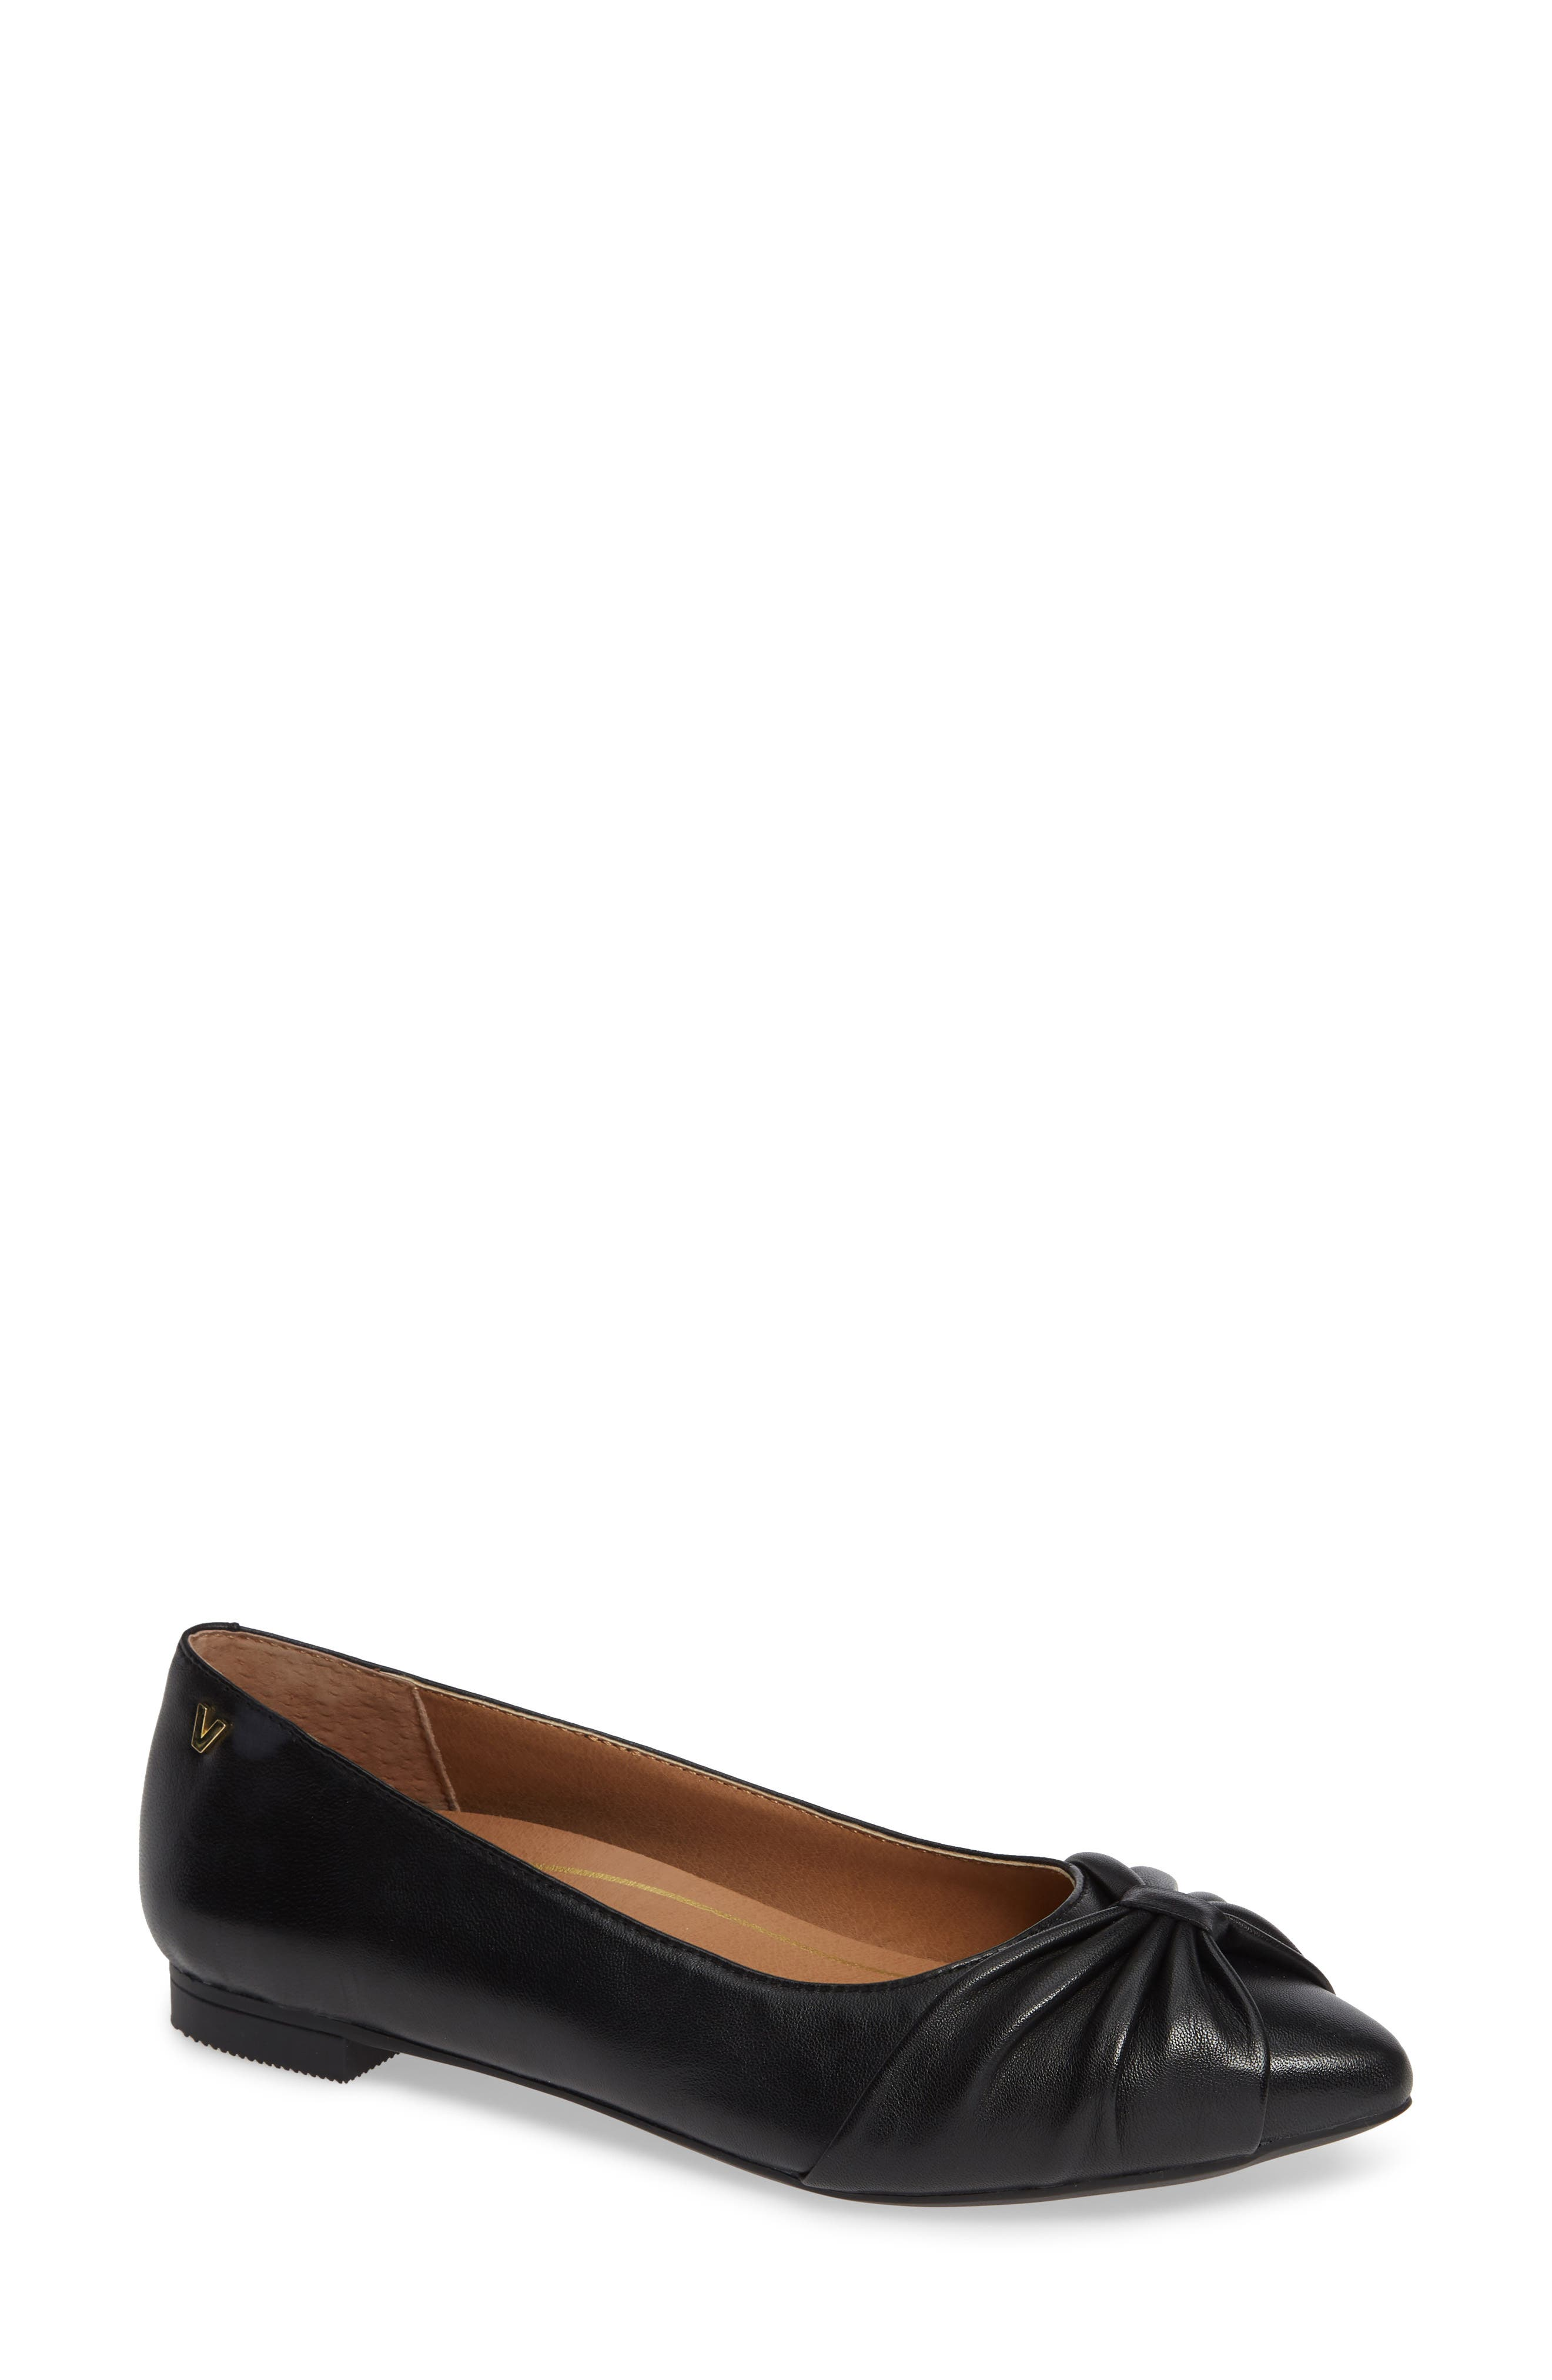 Gramercy Pointy Toe Flat,                         Main,                         color, BLACK/ BLACK LEATHER